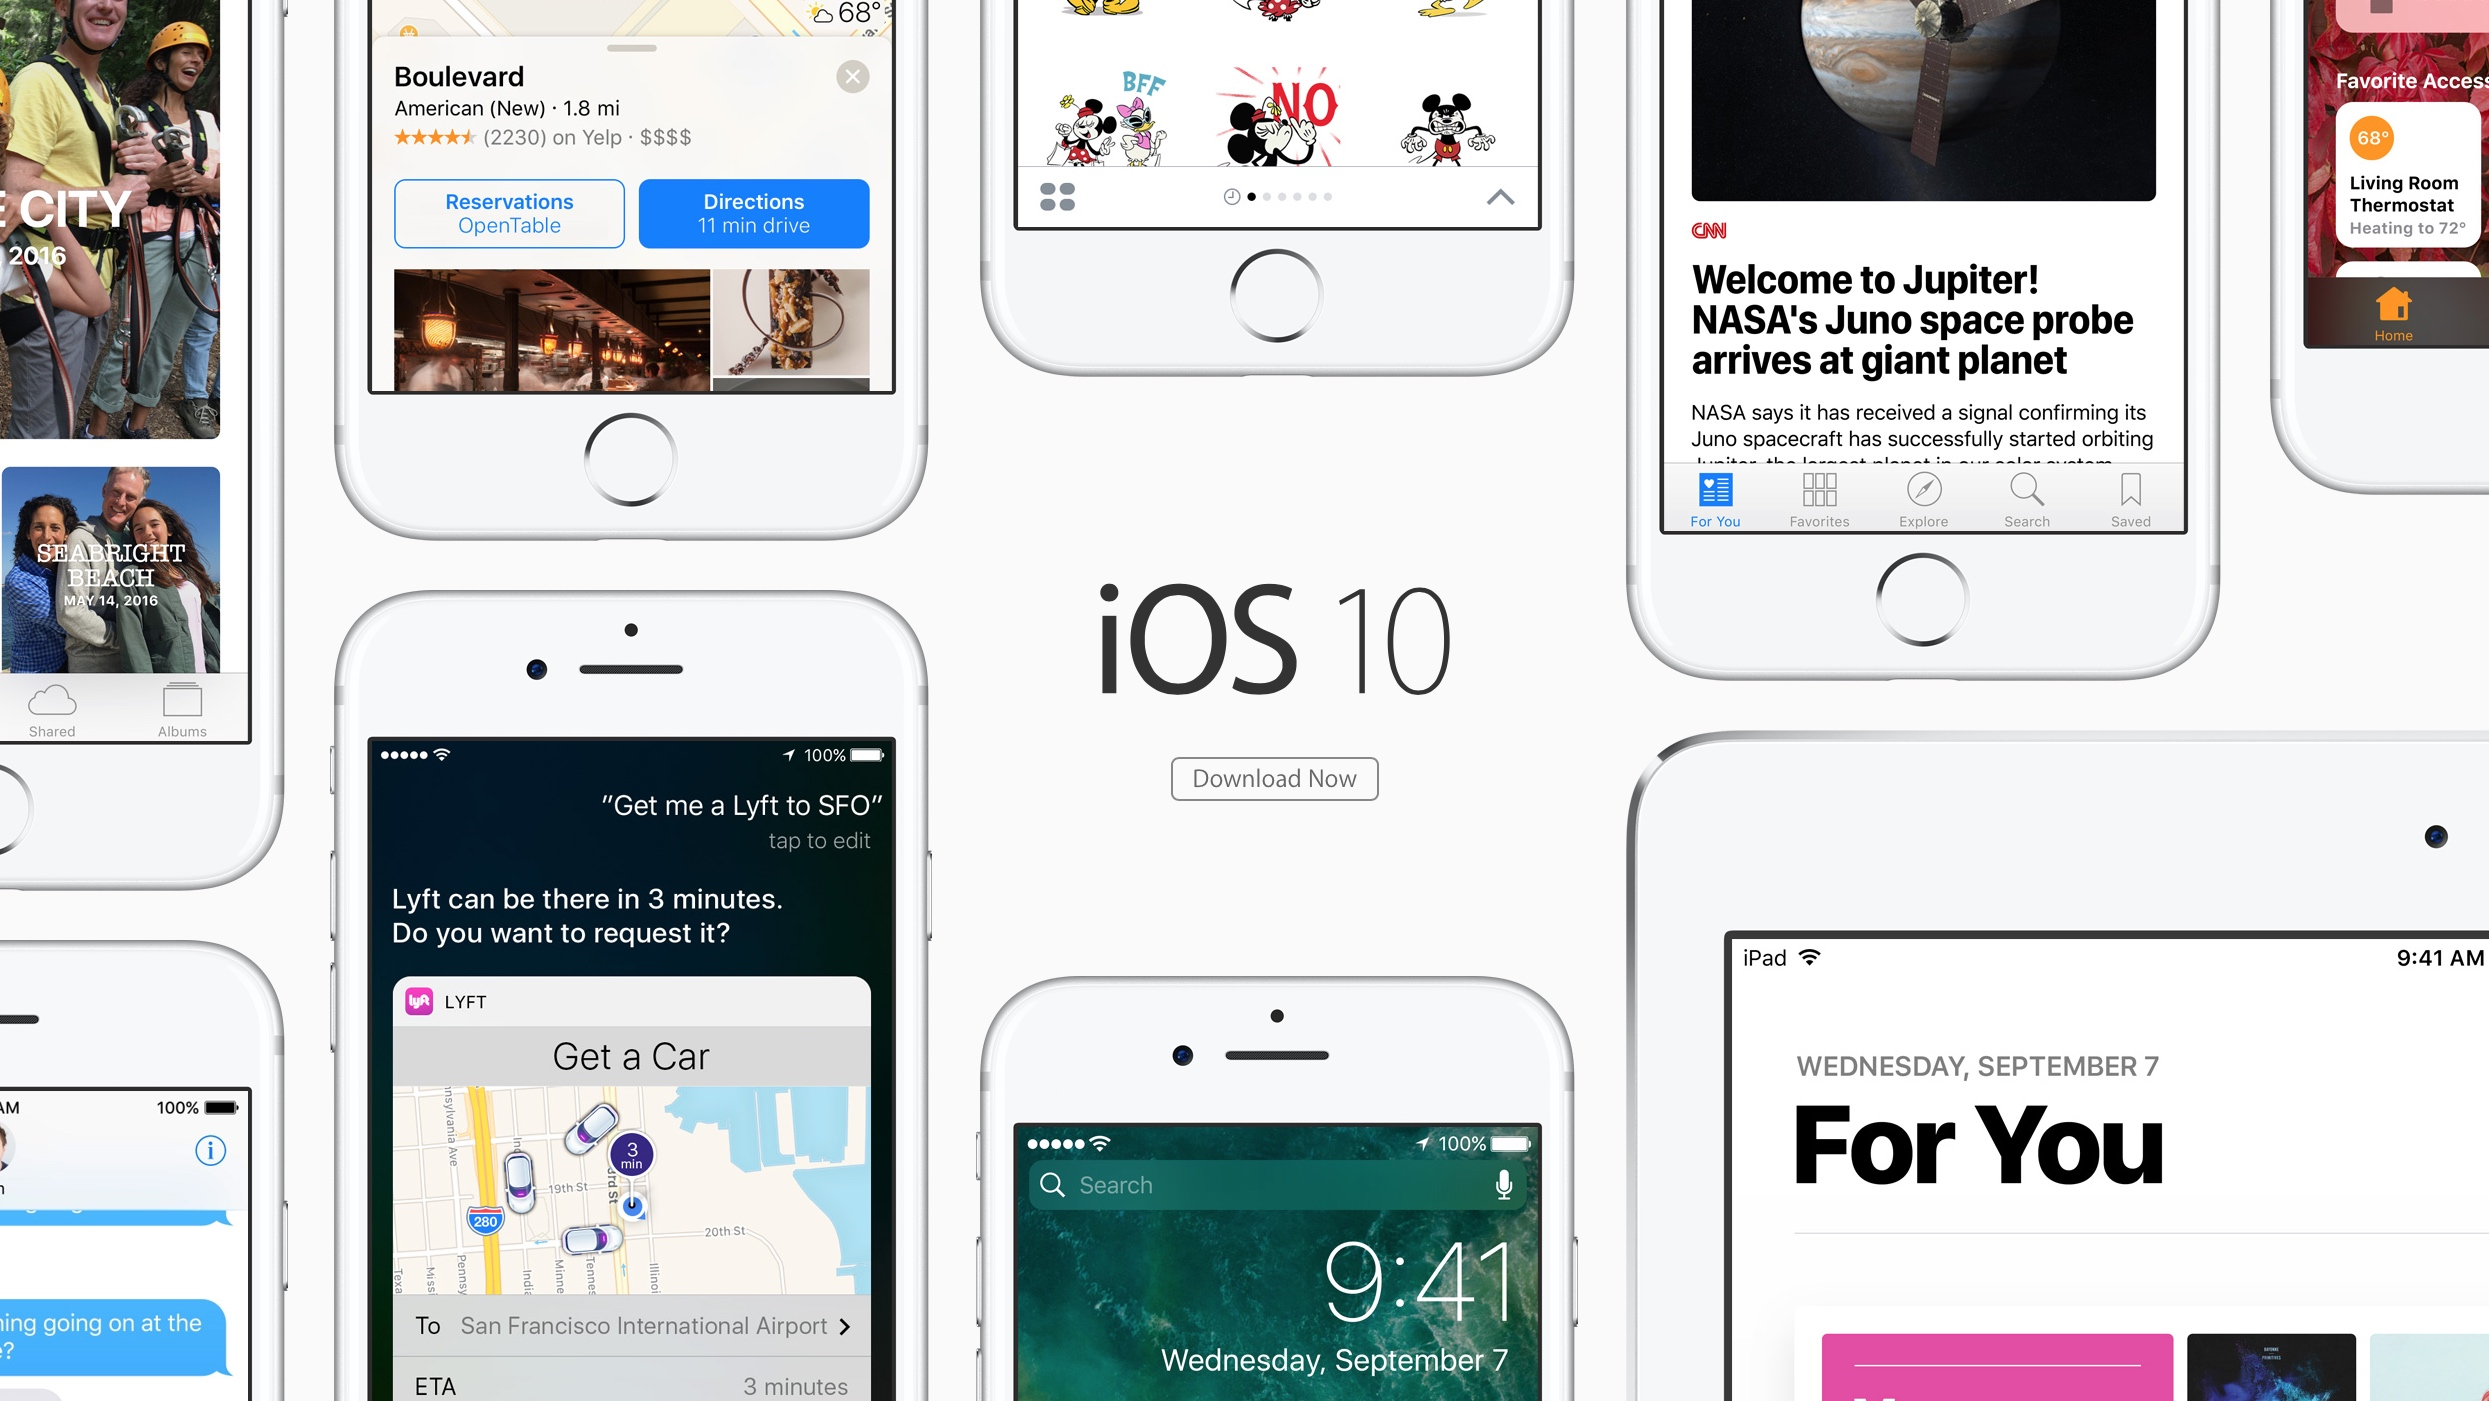 como descargar app de iphone gratis ios 10